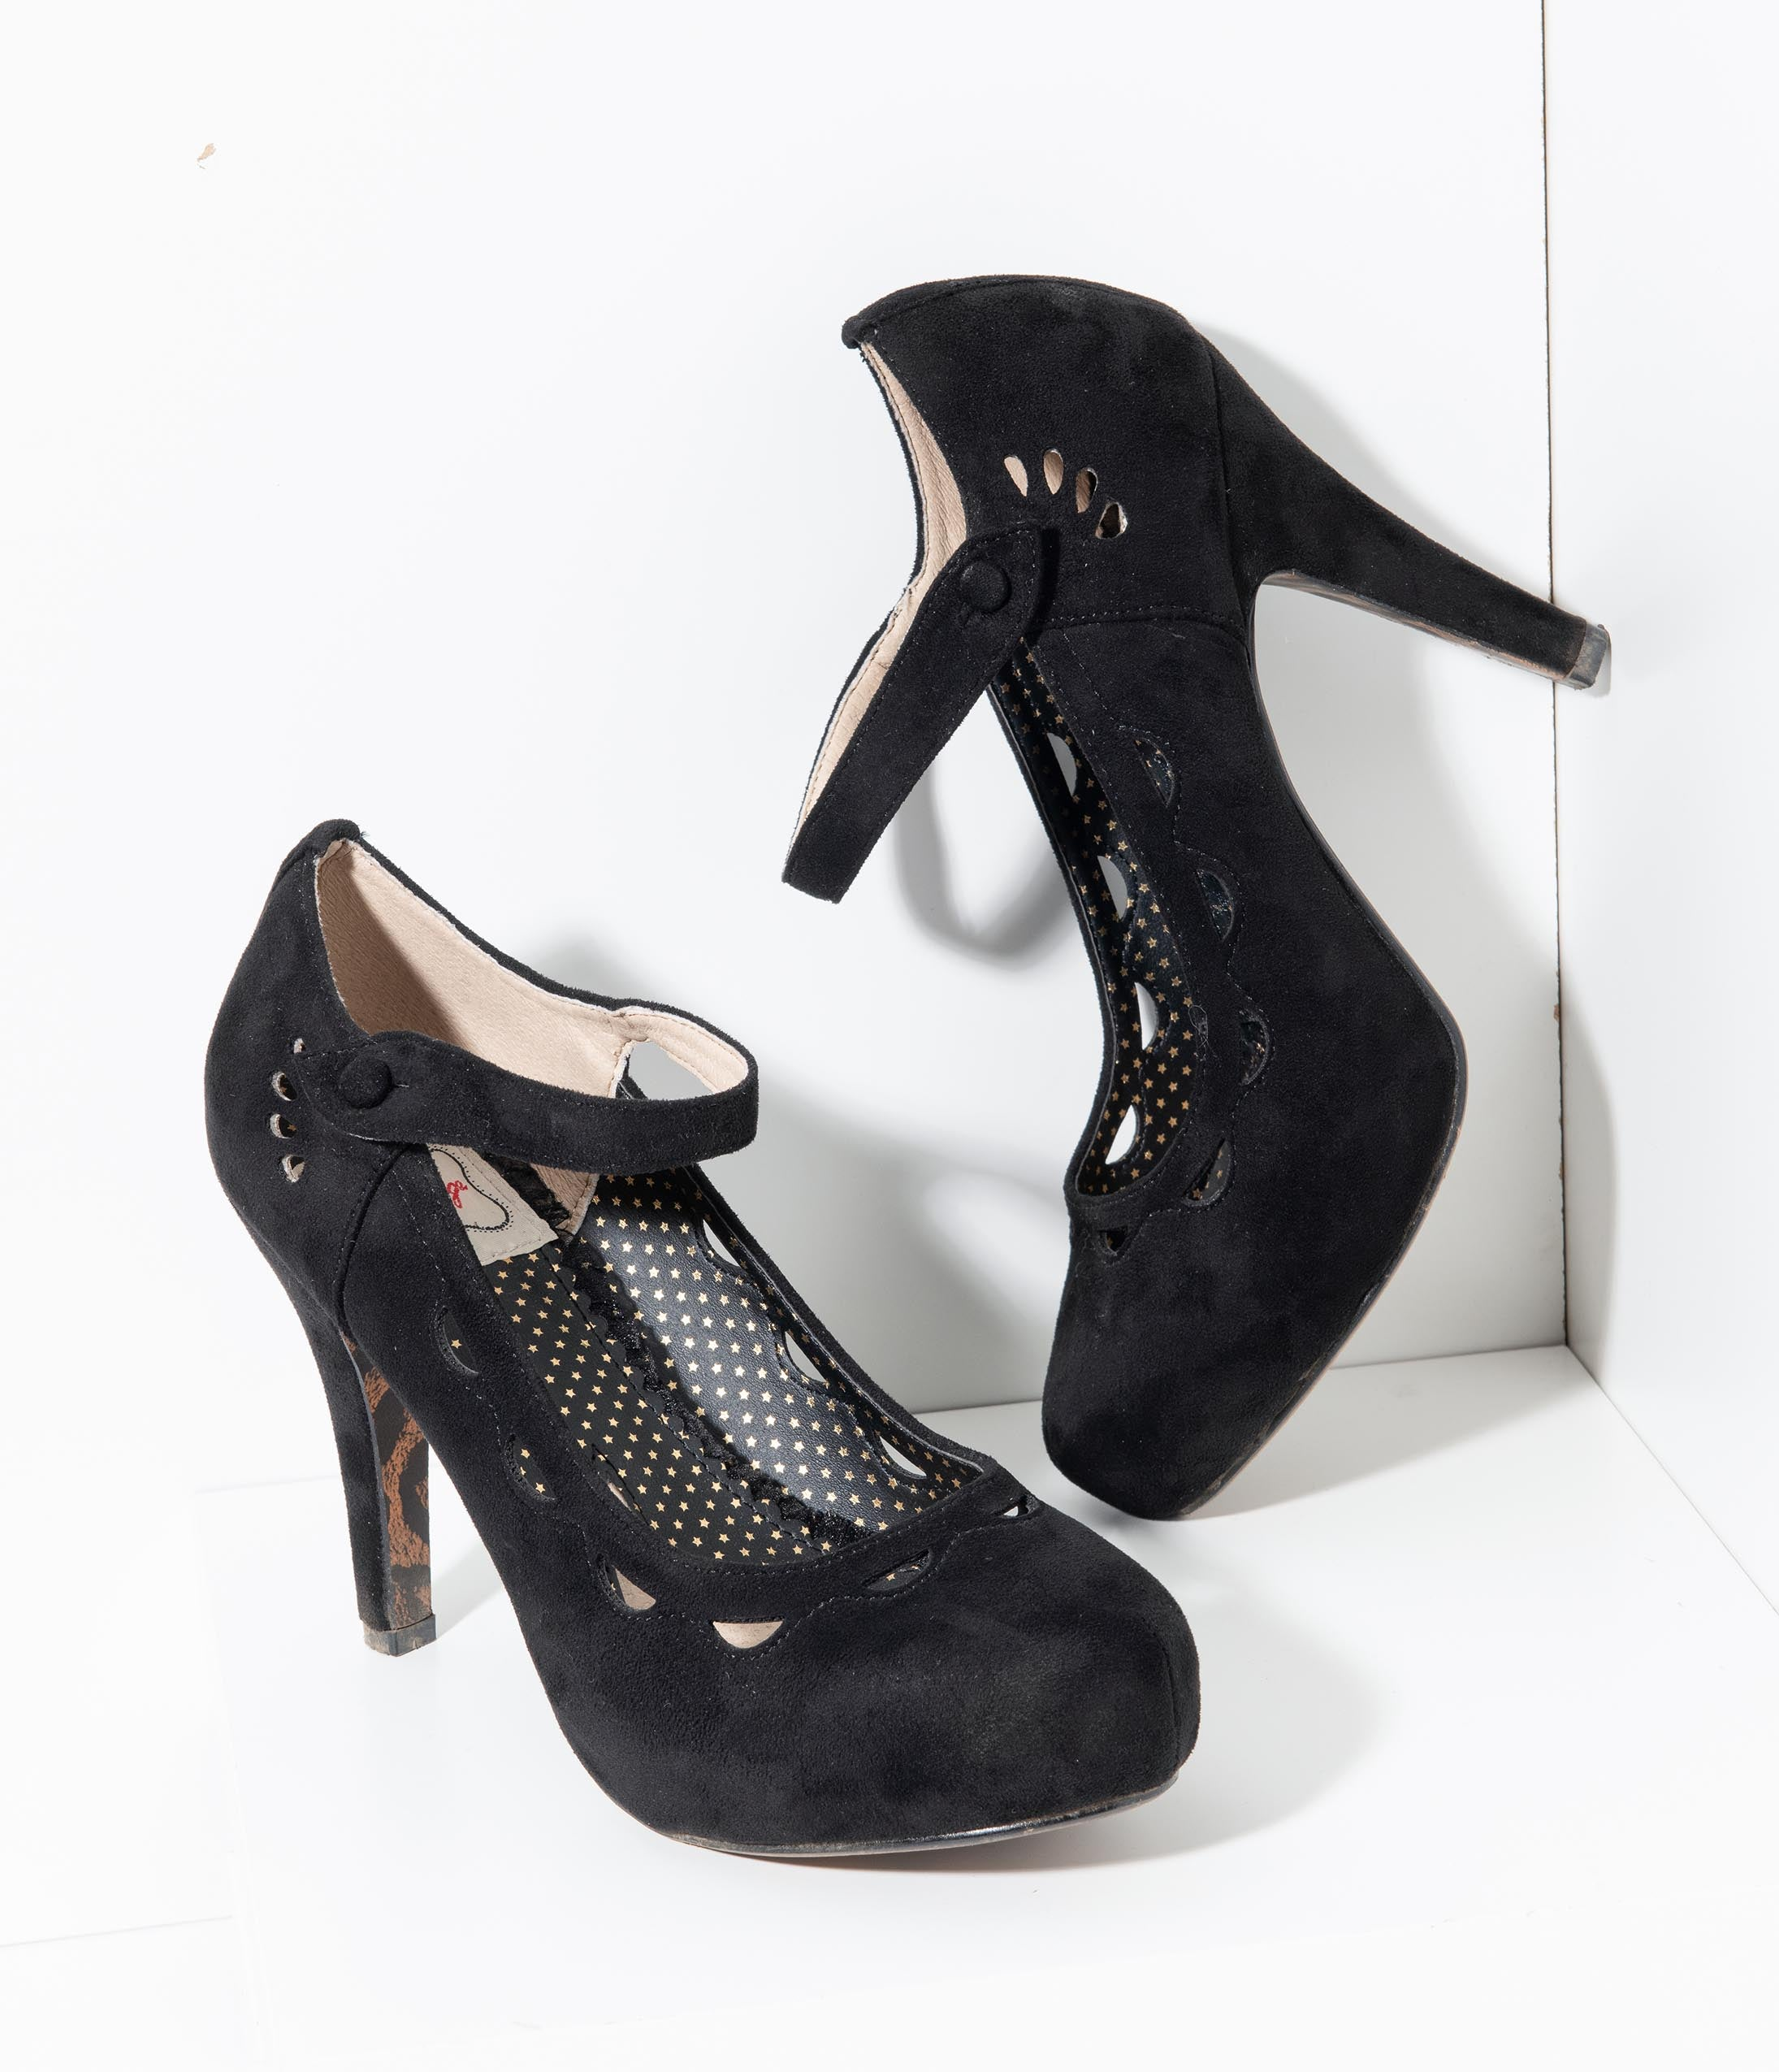 Rockabilly Shoes- Heels, Pumps, Boots, Flats Bettie Page Black Suede Mary Jane Yvette Pumps $76.00 AT vintagedancer.com